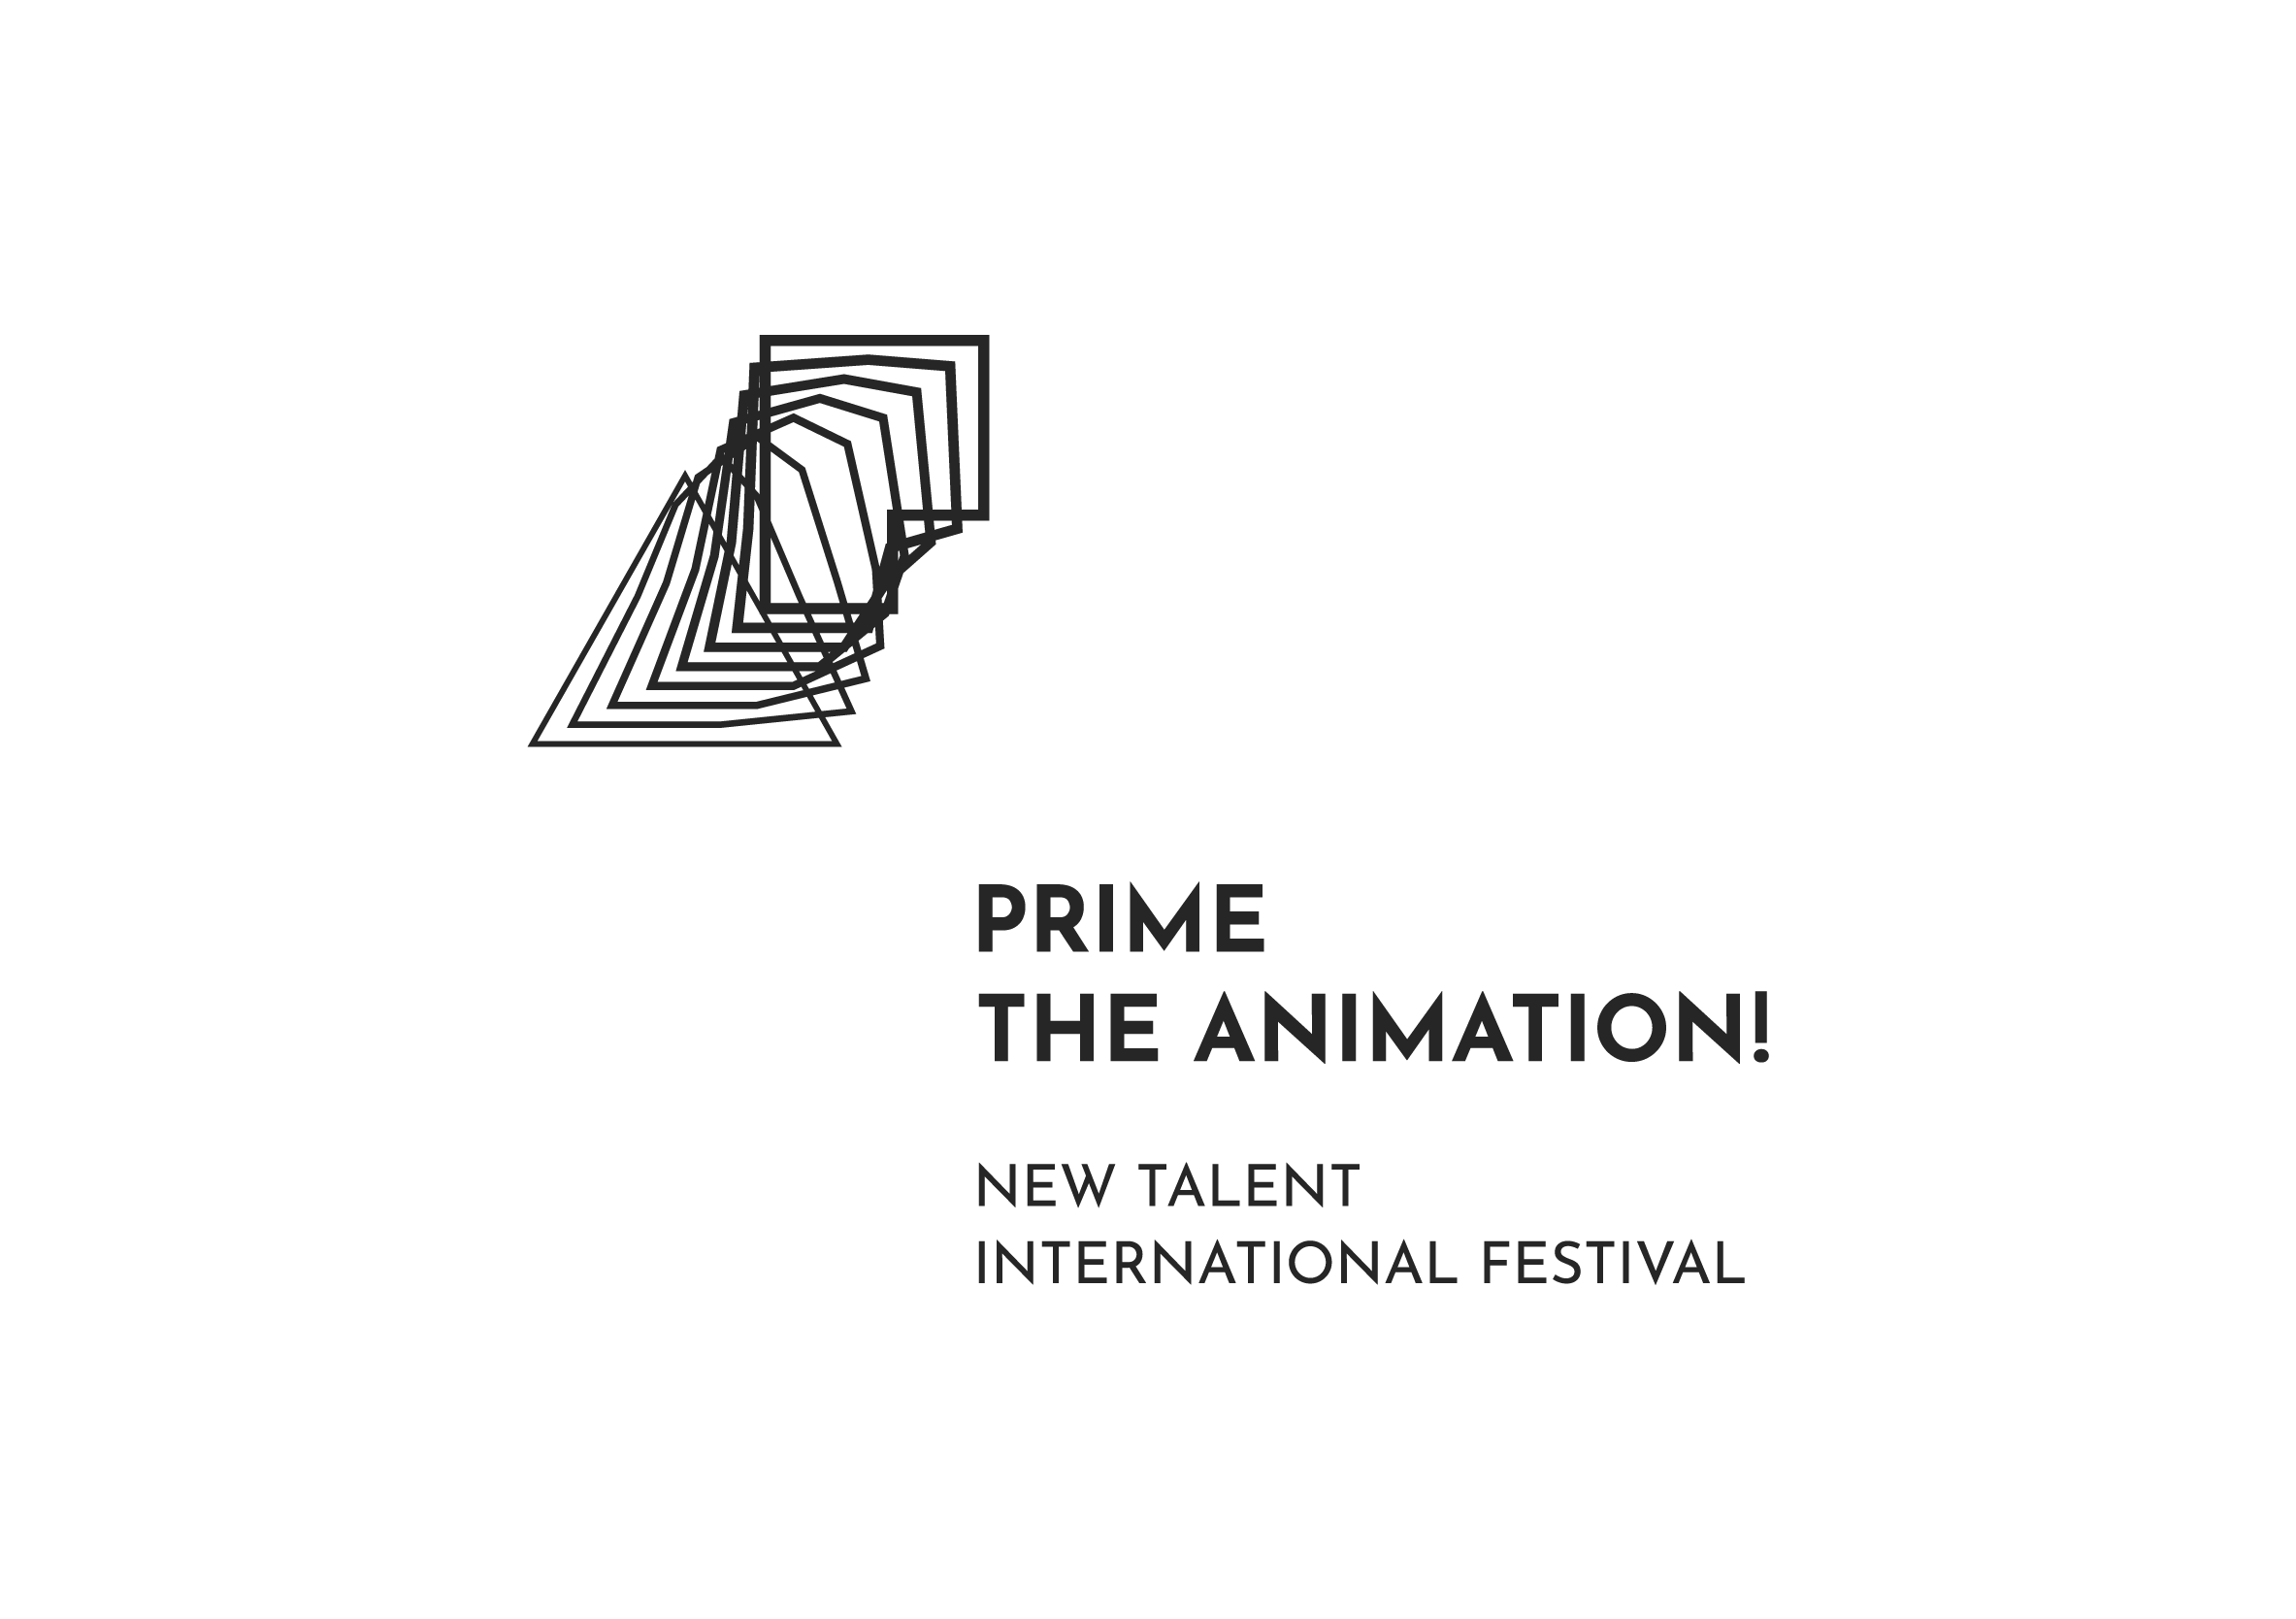 Prime the Animation!